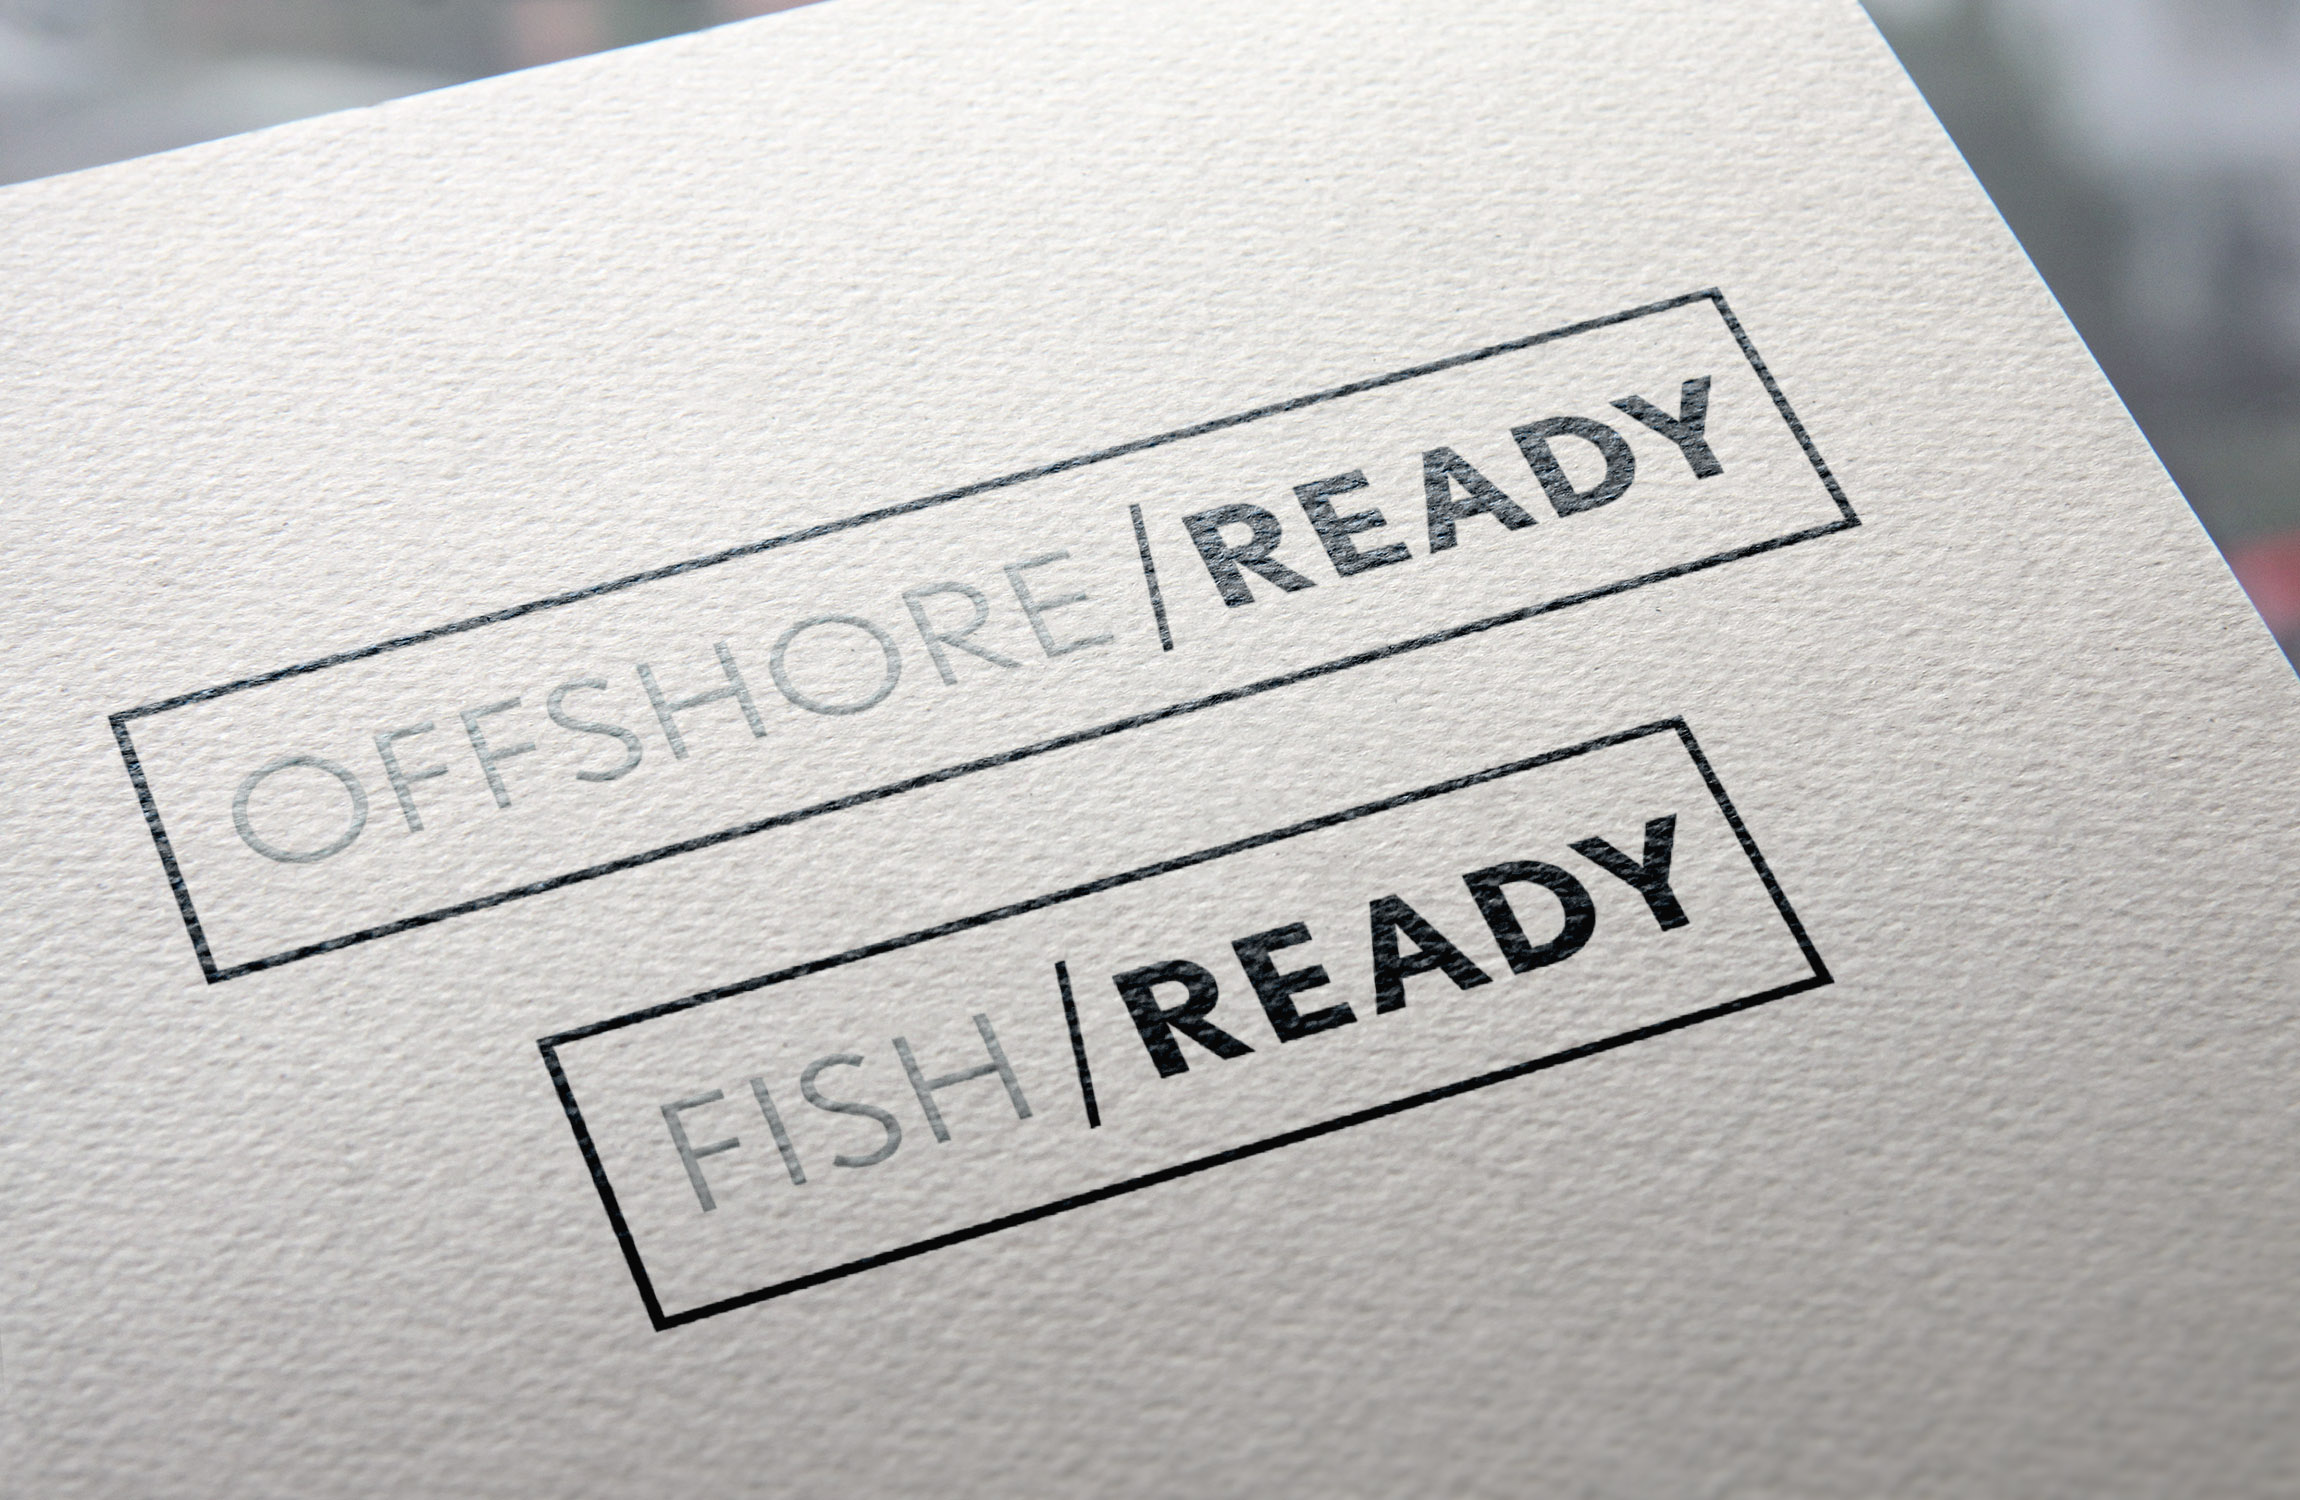 ocean ready logo mocked up on cardstock paper the words ocean and ready are in a rectangular box separated by a back slash